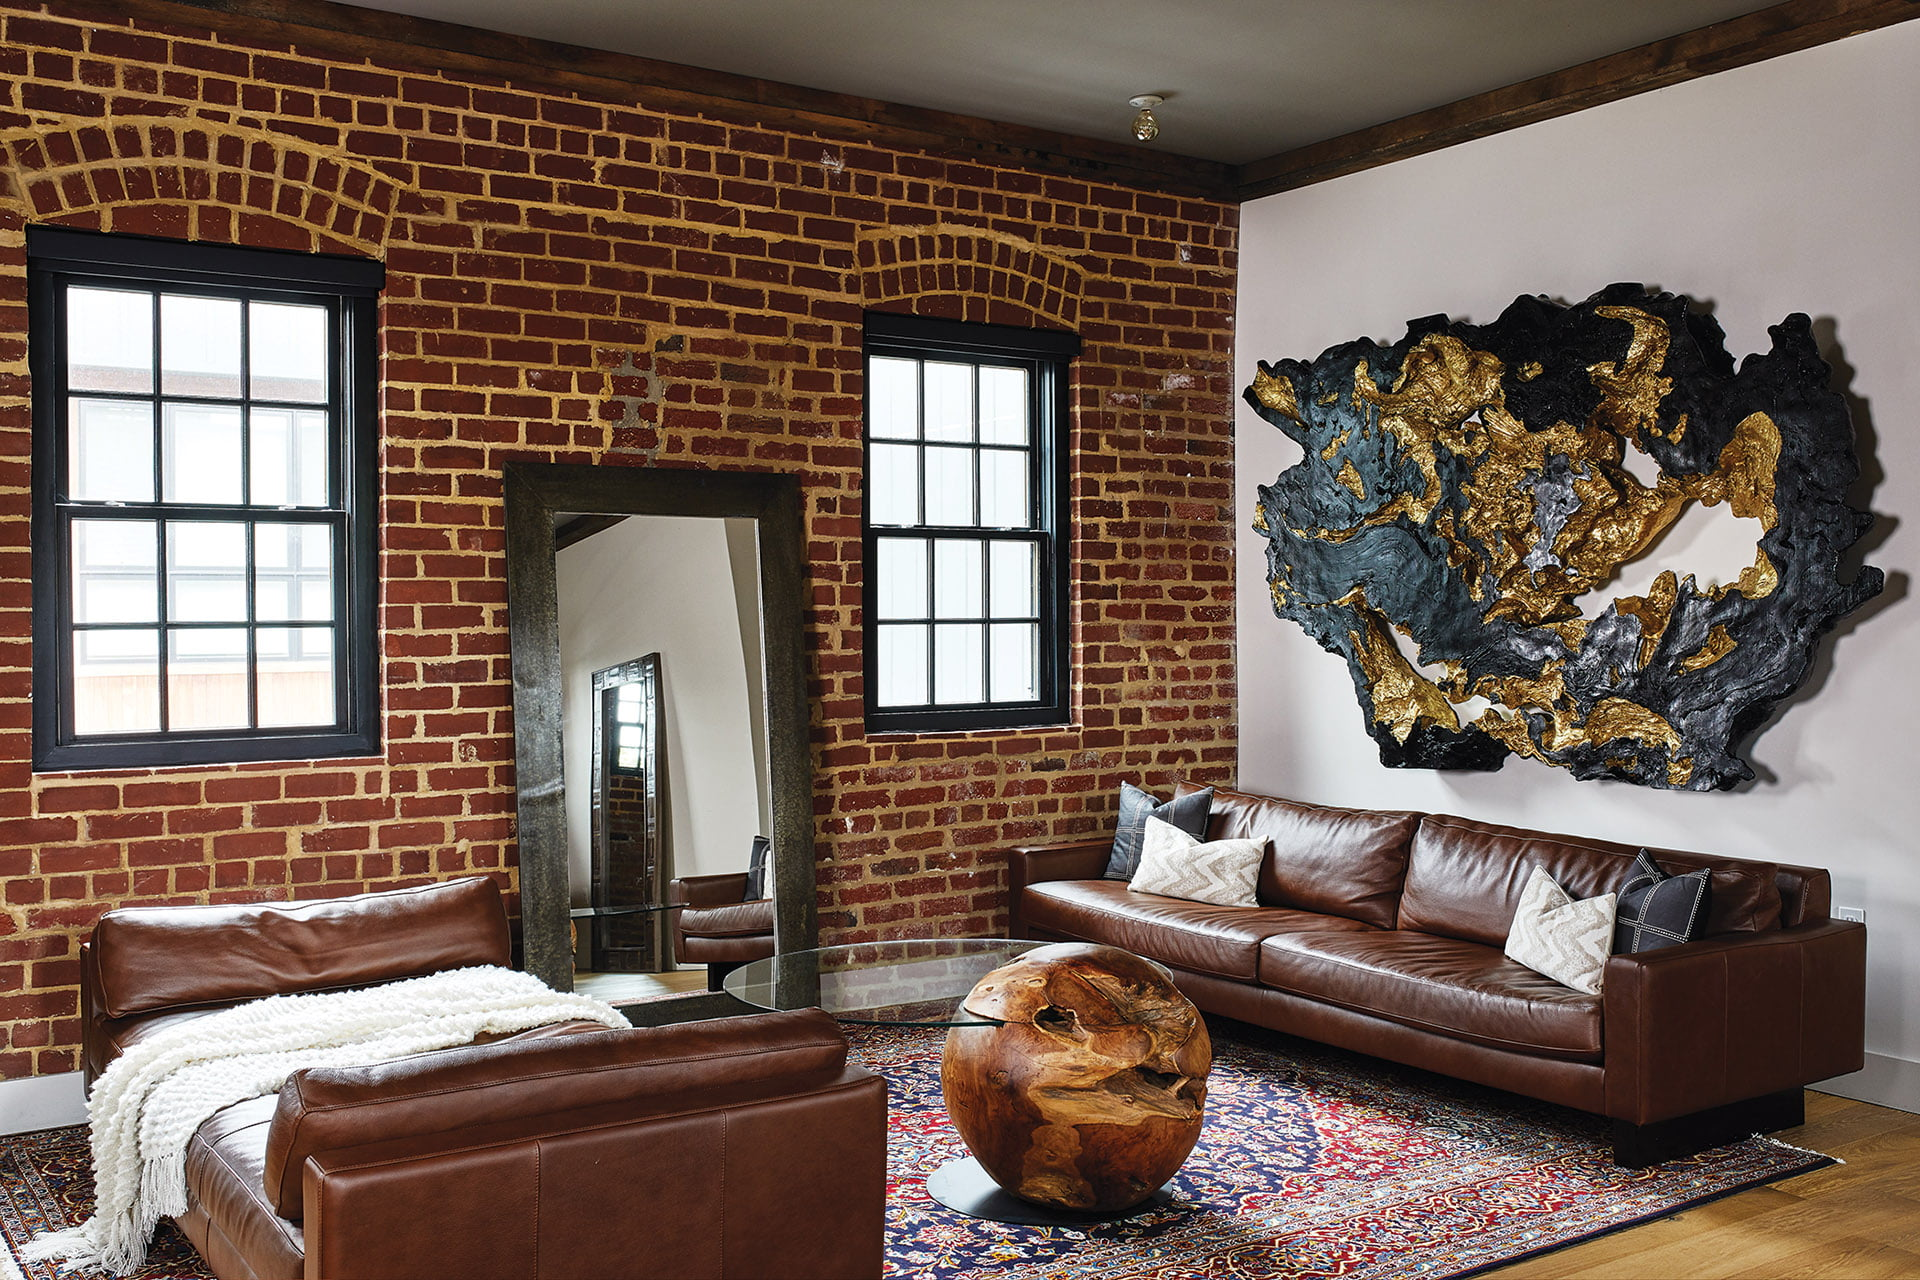 Living room features Room & Board leather sofas and a three-dimensional resin wall sculpture.